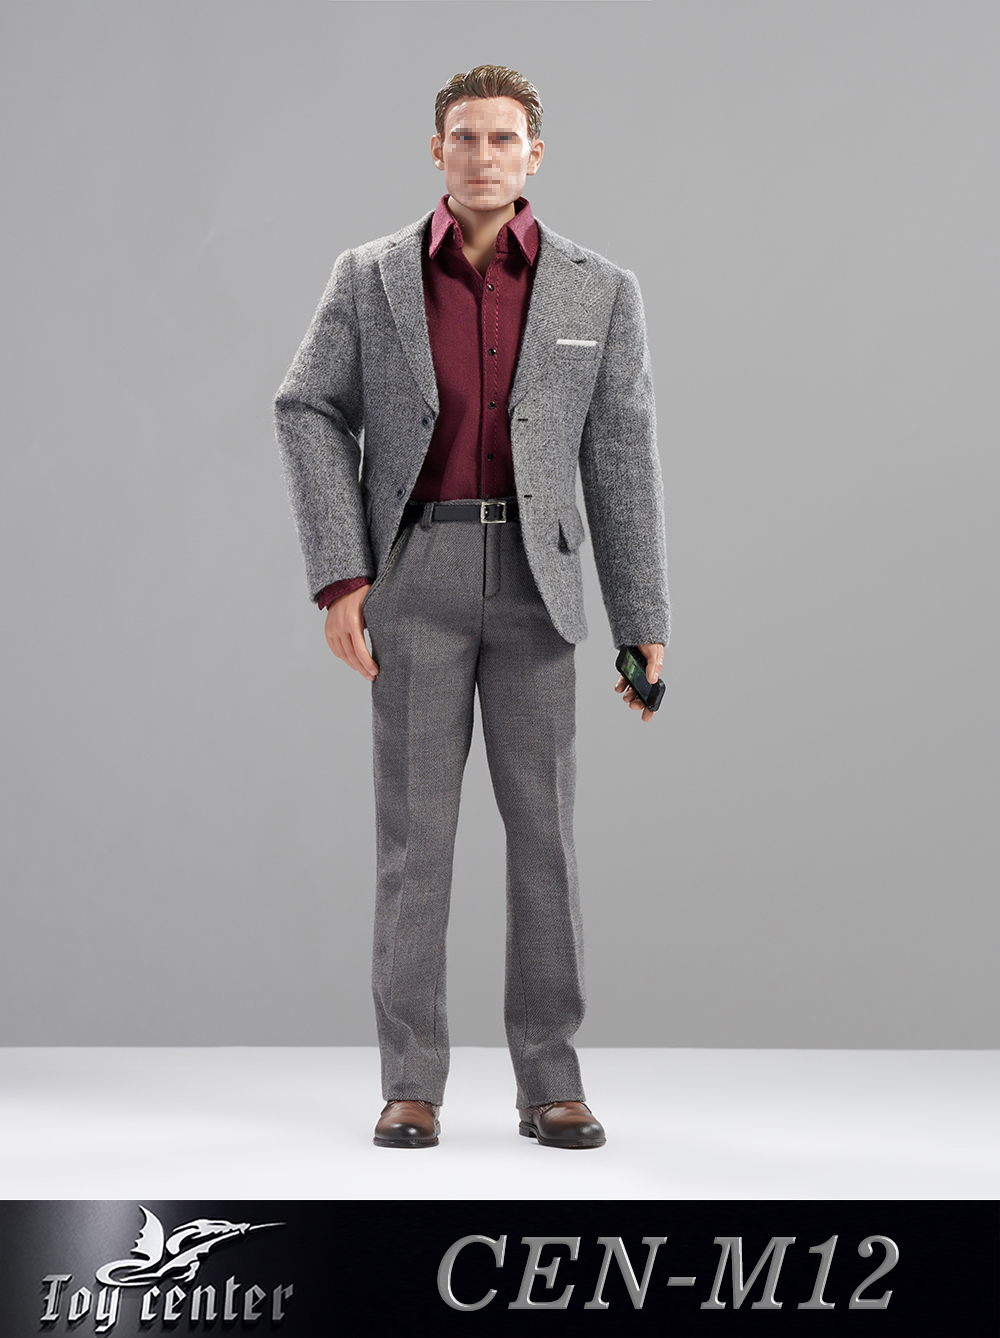 clothes - NEW PRODUCT: Toy center: 1/6 US team old casual suit CEN-M12# 16064210